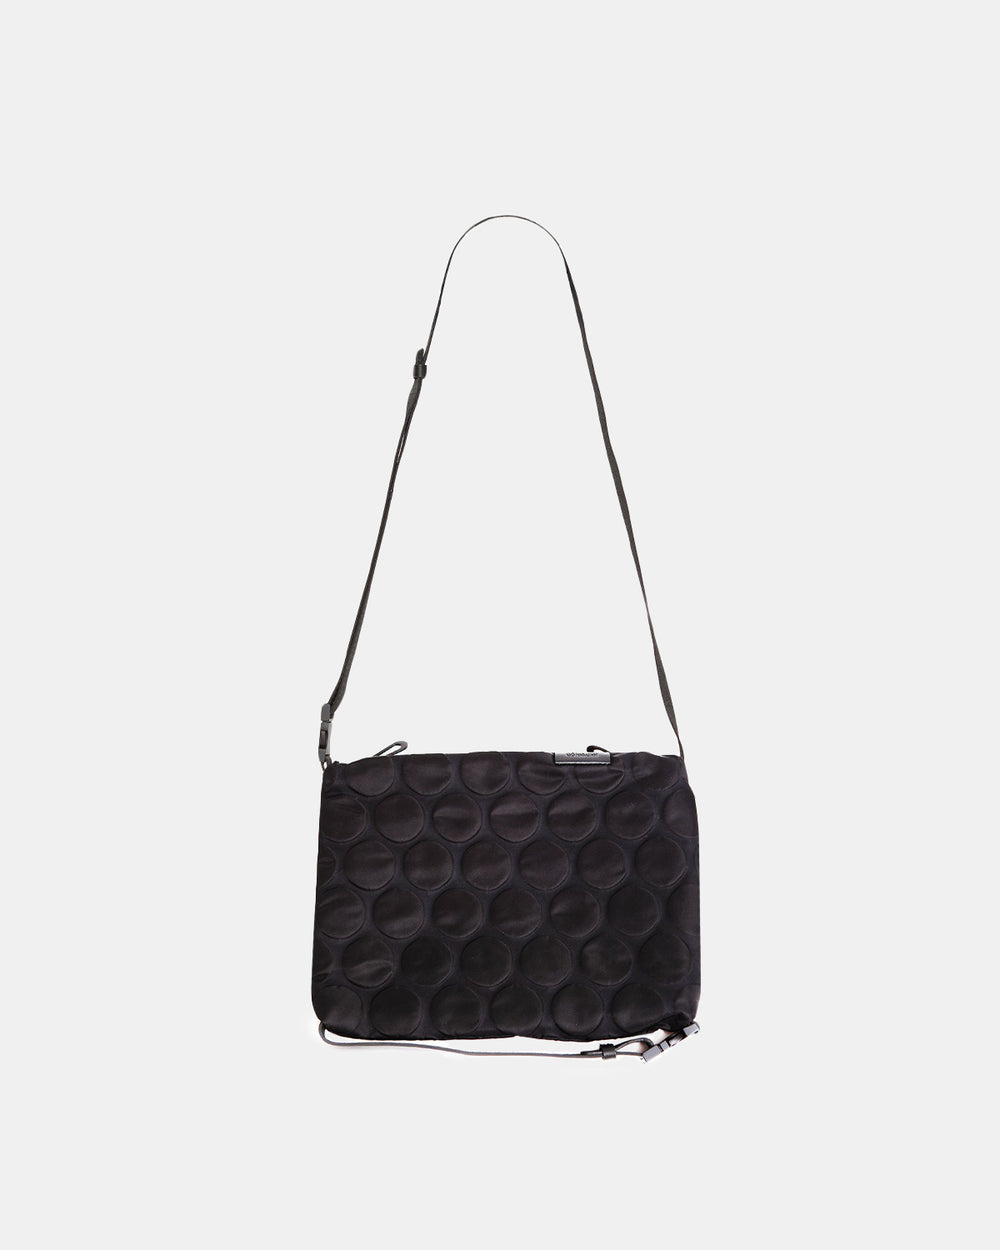 Cote & Ciel - Inn Medium Bag (Bubble Black)